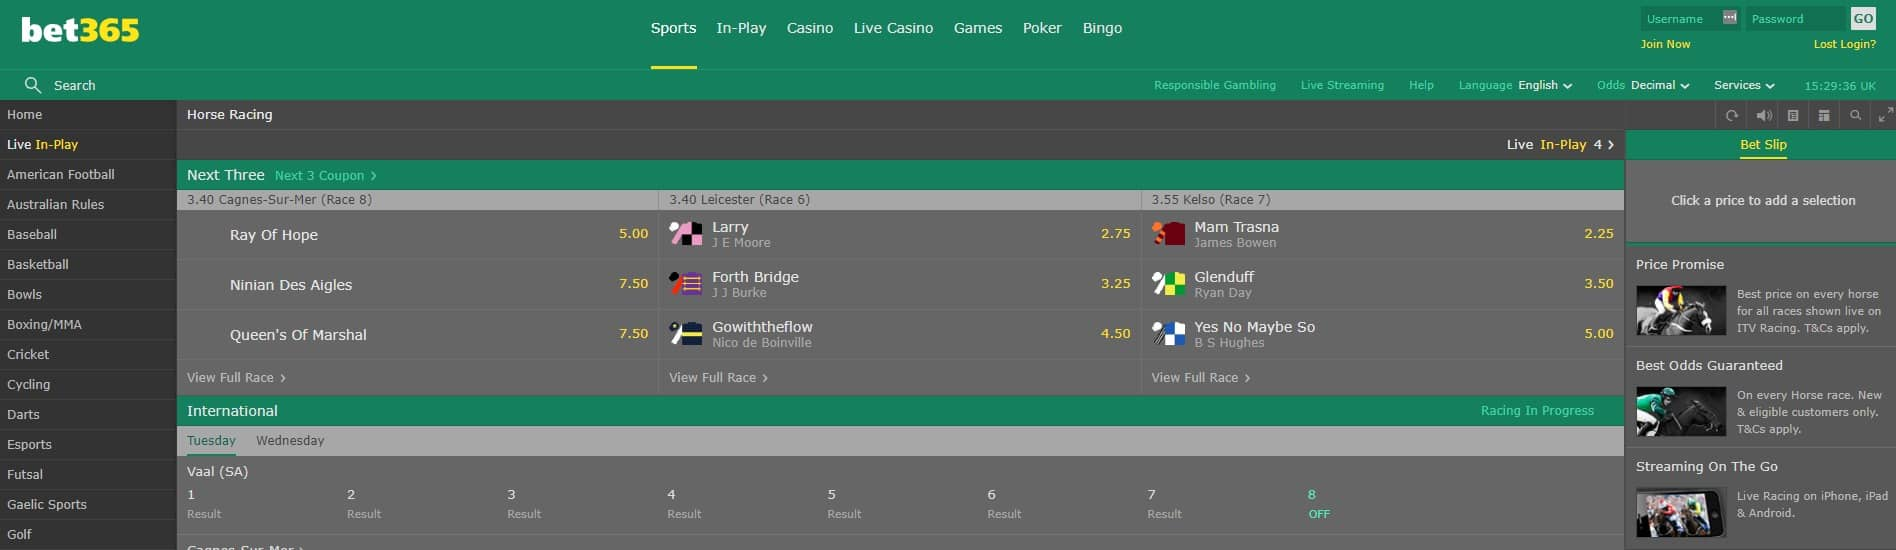 bet365 Online Sports Betting Horse Betting Area